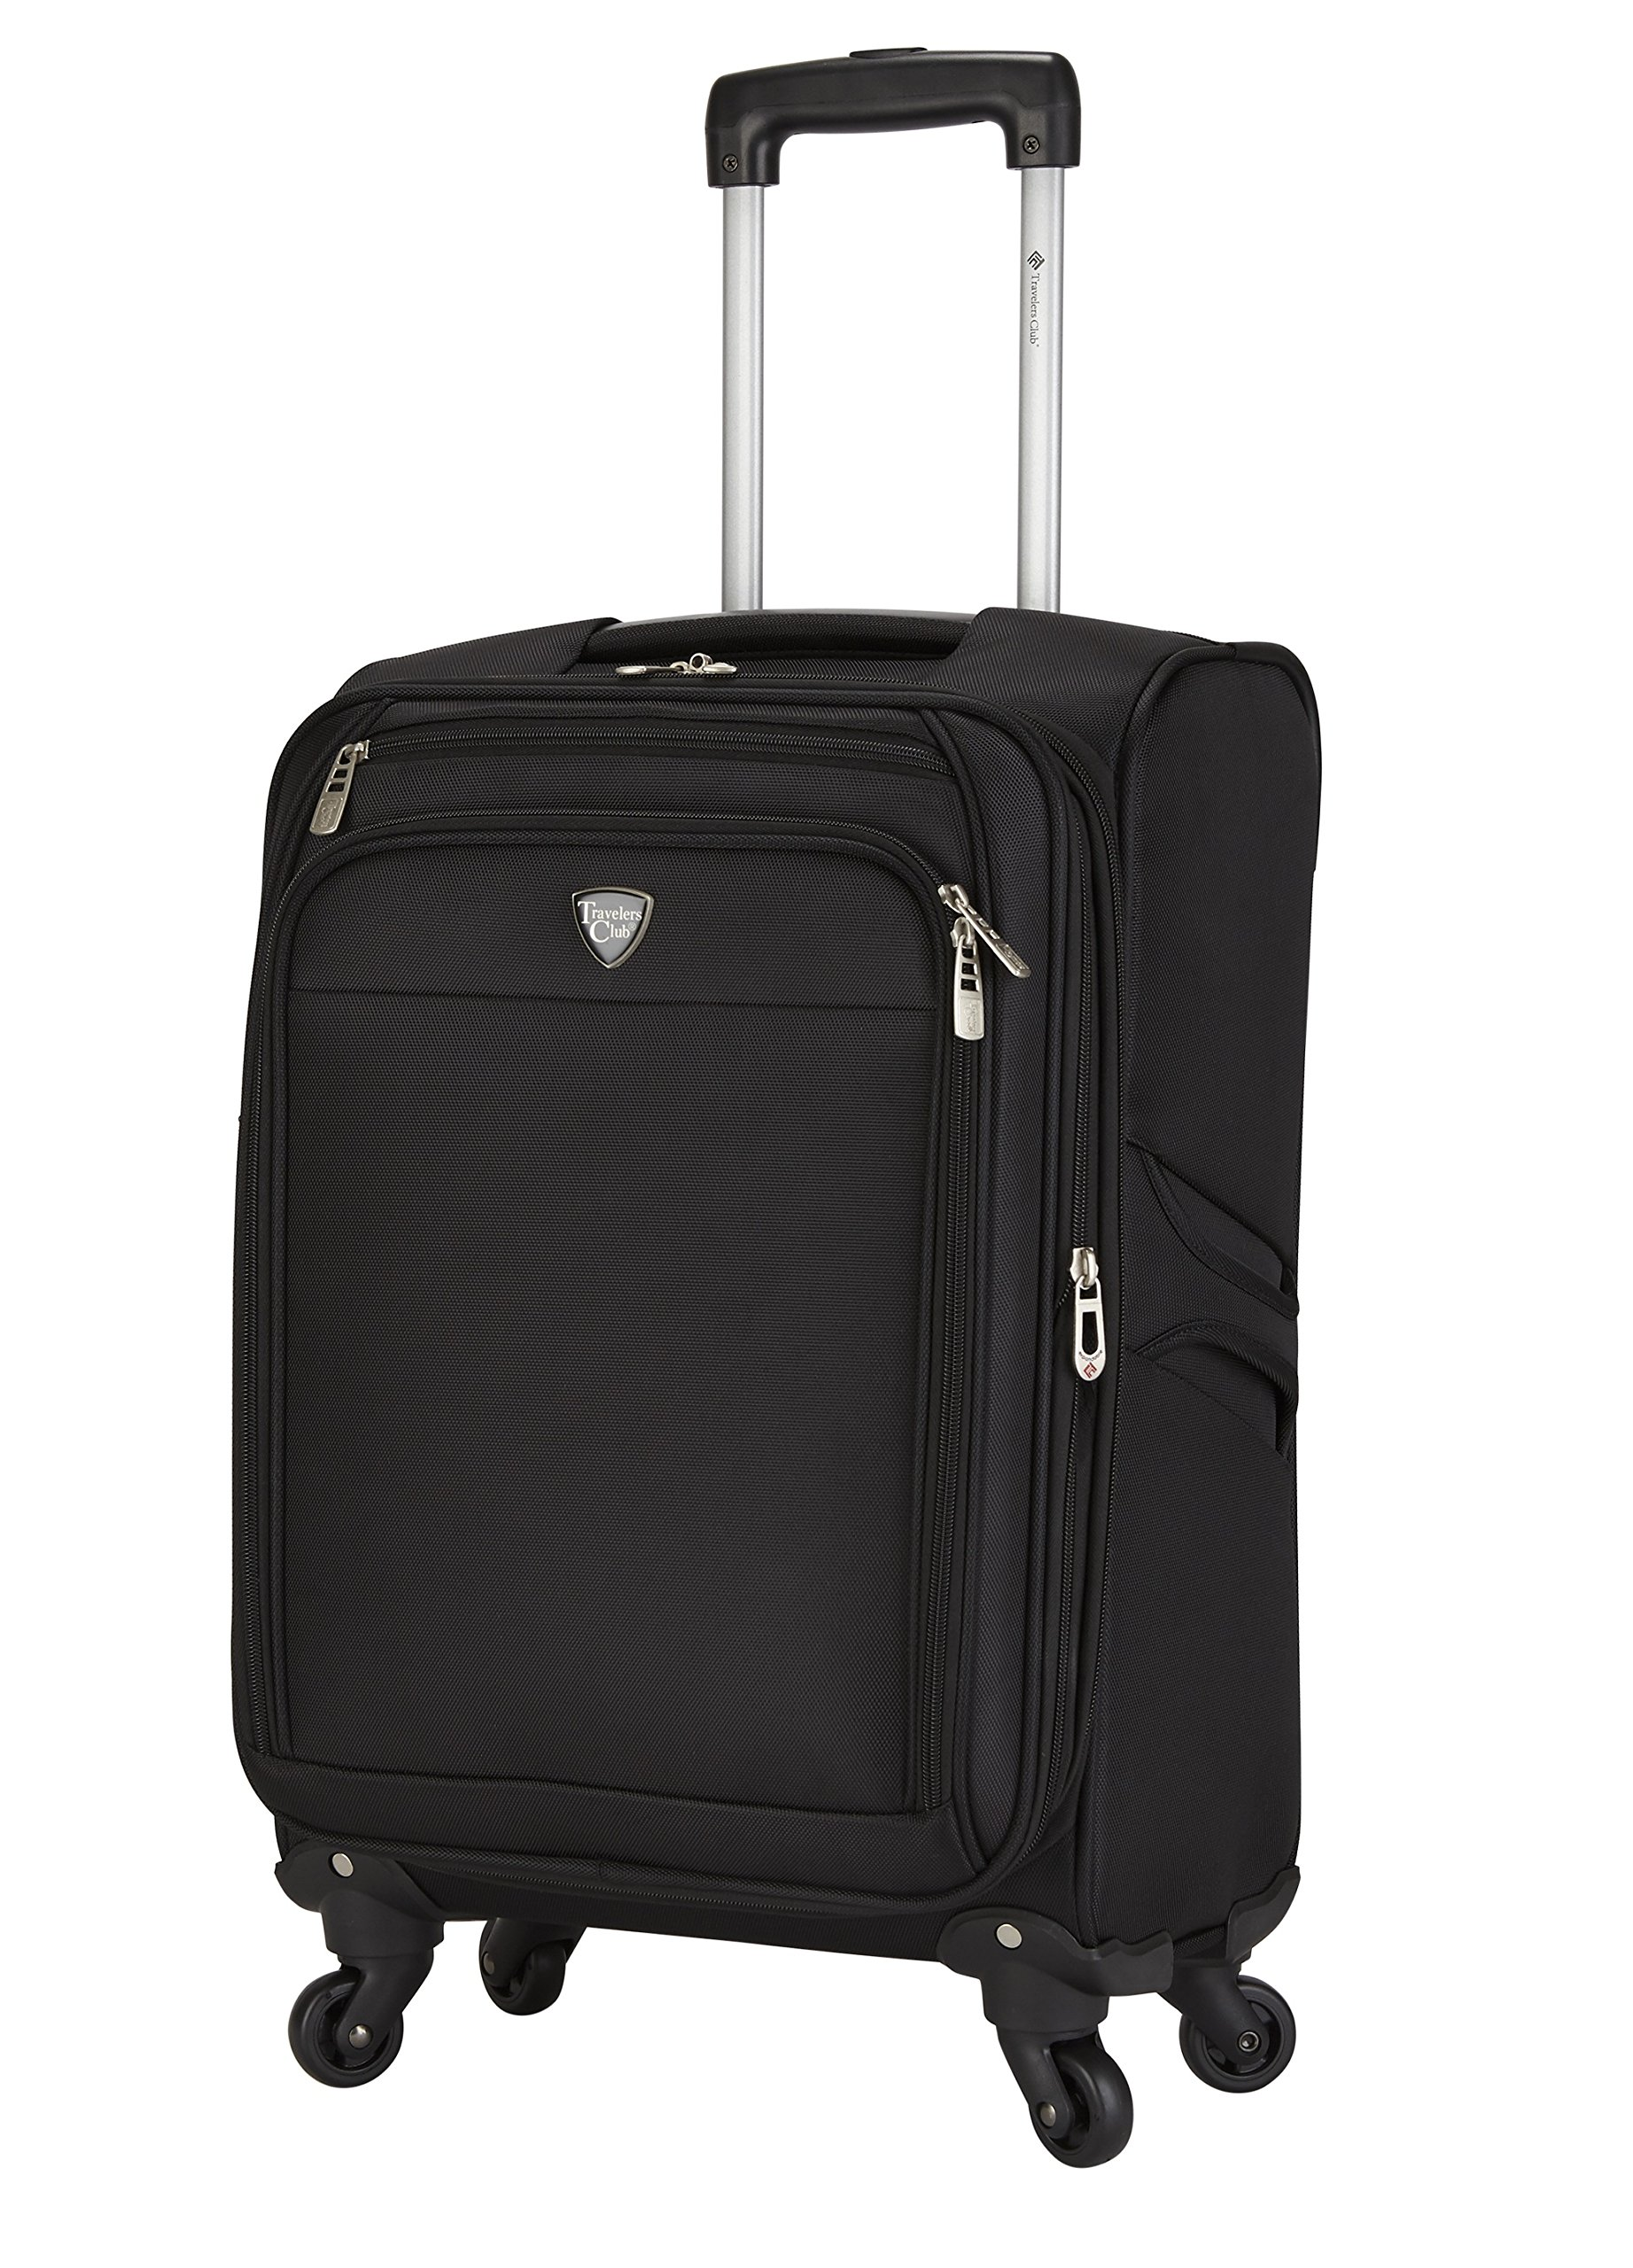 Travelers Club 18'' Carry-On Spinner Luggage Constructed with Top Durable Fabric, Black Color Option